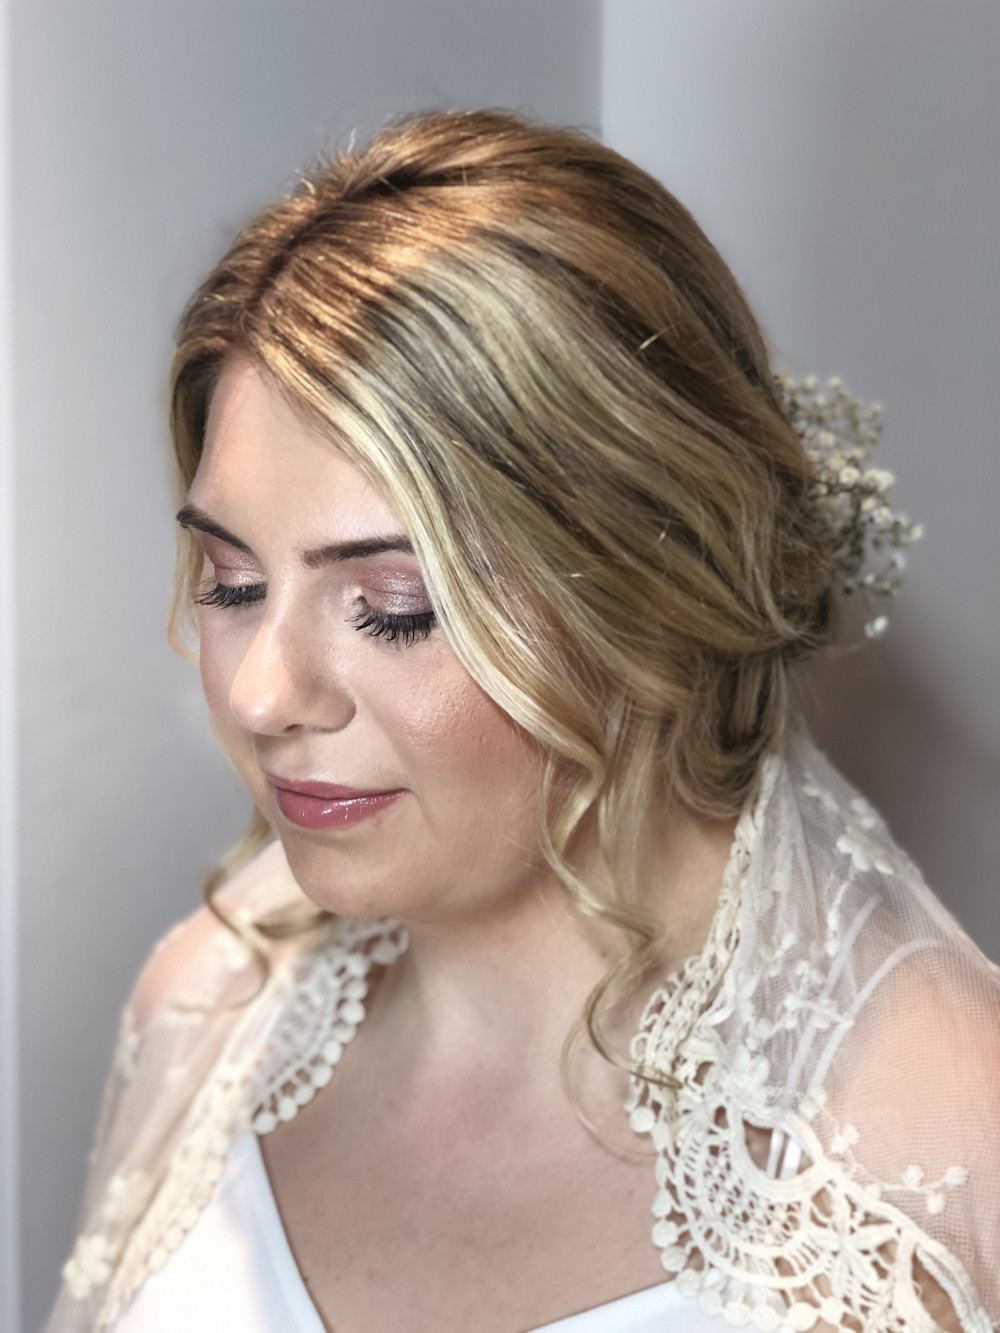 soft and romantic hair and makeup with a vintage hand me down veil - Make Me Bridal Artist: The studio effect . Photography by: abbie wiggins. #romantichairup #romantichair #softmakeup #highlighting #vintageveil